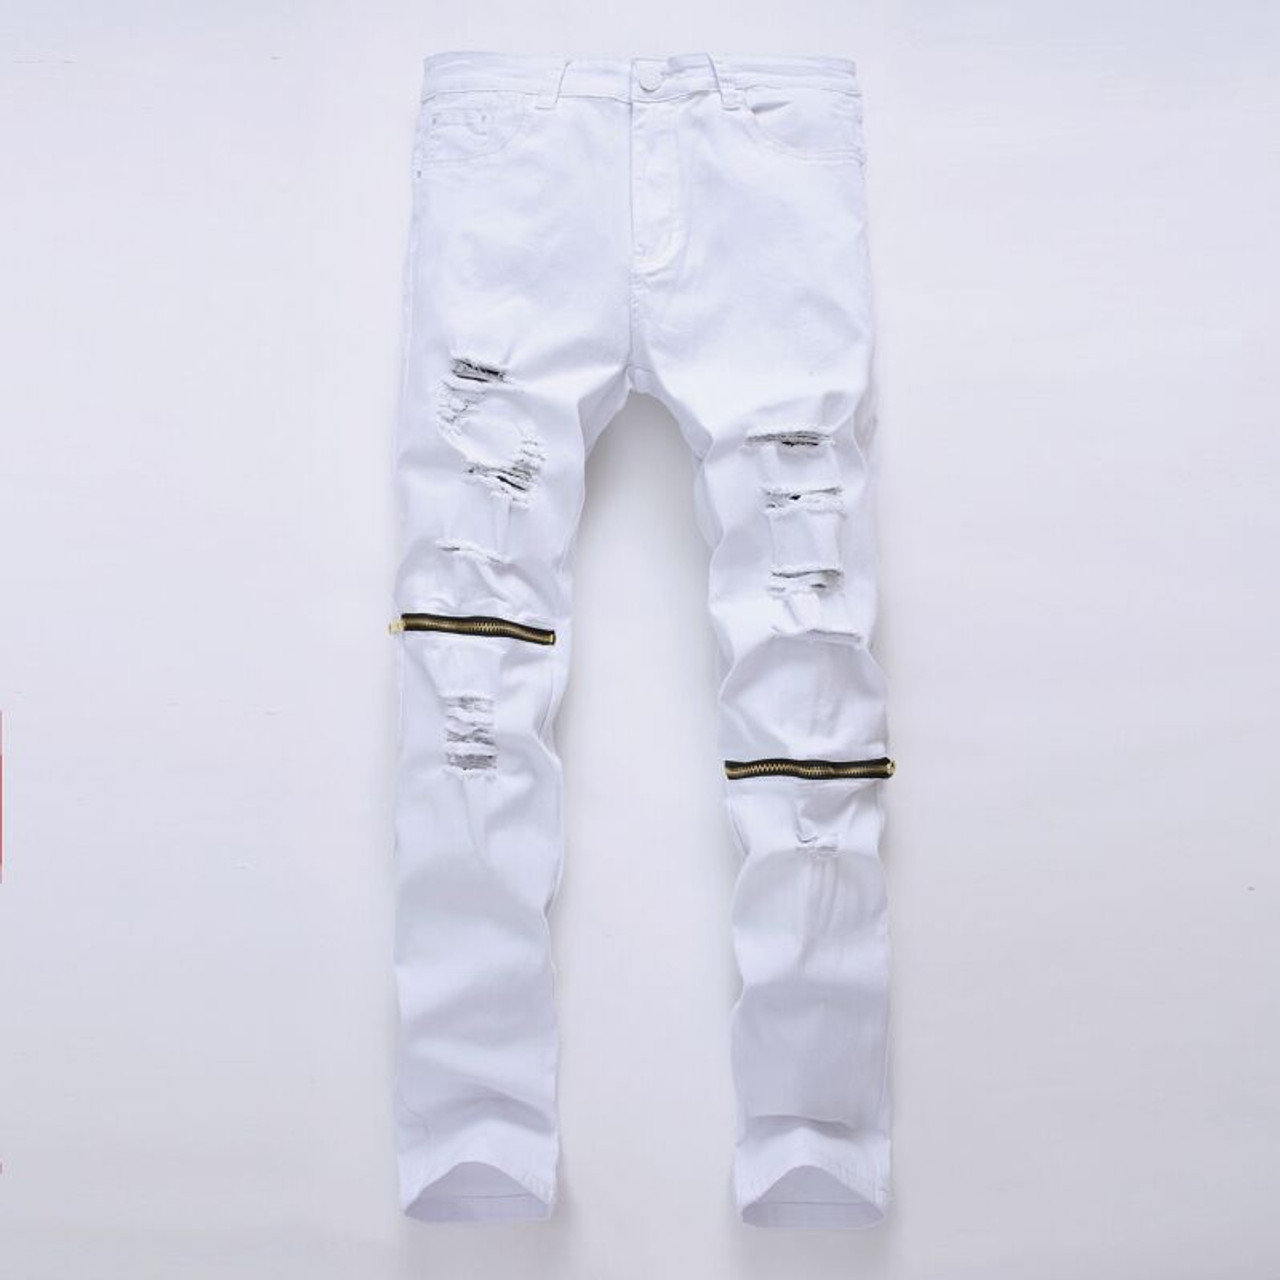 Embassy battery Put away clothes  White Ripped Jeans Men With Holes Super Skinny Famous Designer Brand Slim  Fit Destroyed Jeans Pencil pants Slim zipper Jeans - OnshopDeals.Com